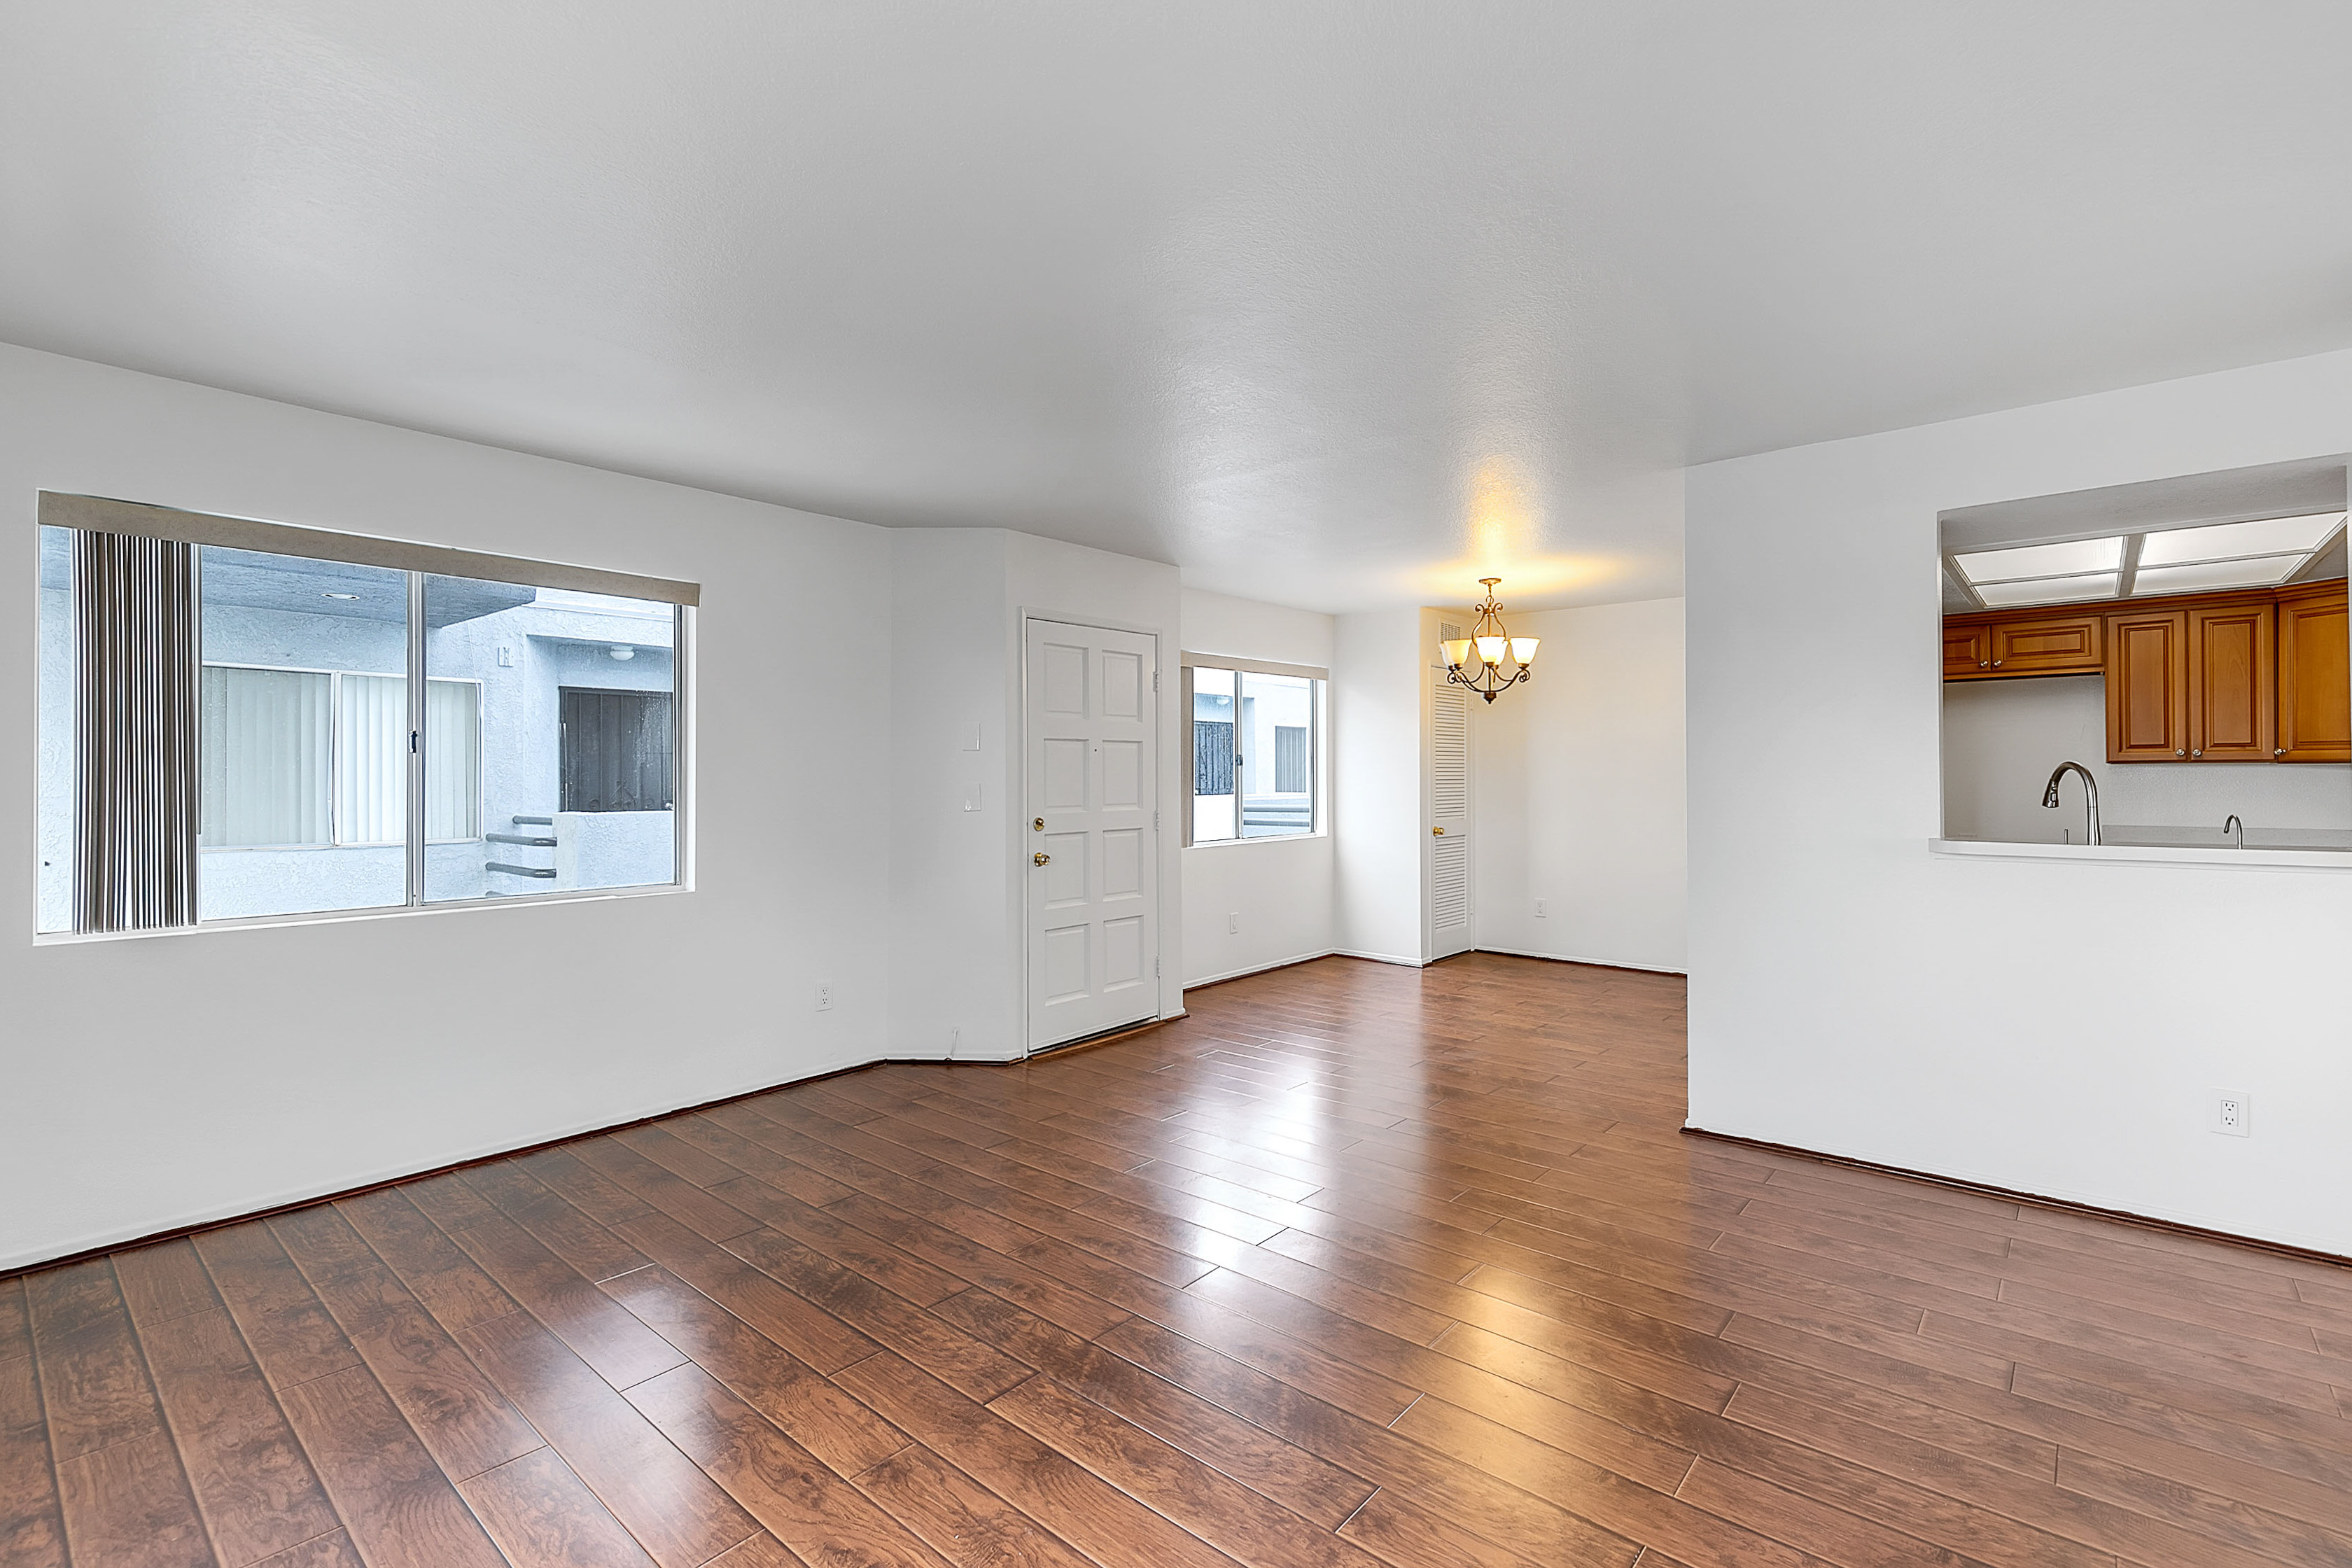 Amazing Deal! 2BR/ 2BA in Prime East Hollywood Location- tandem parking included!